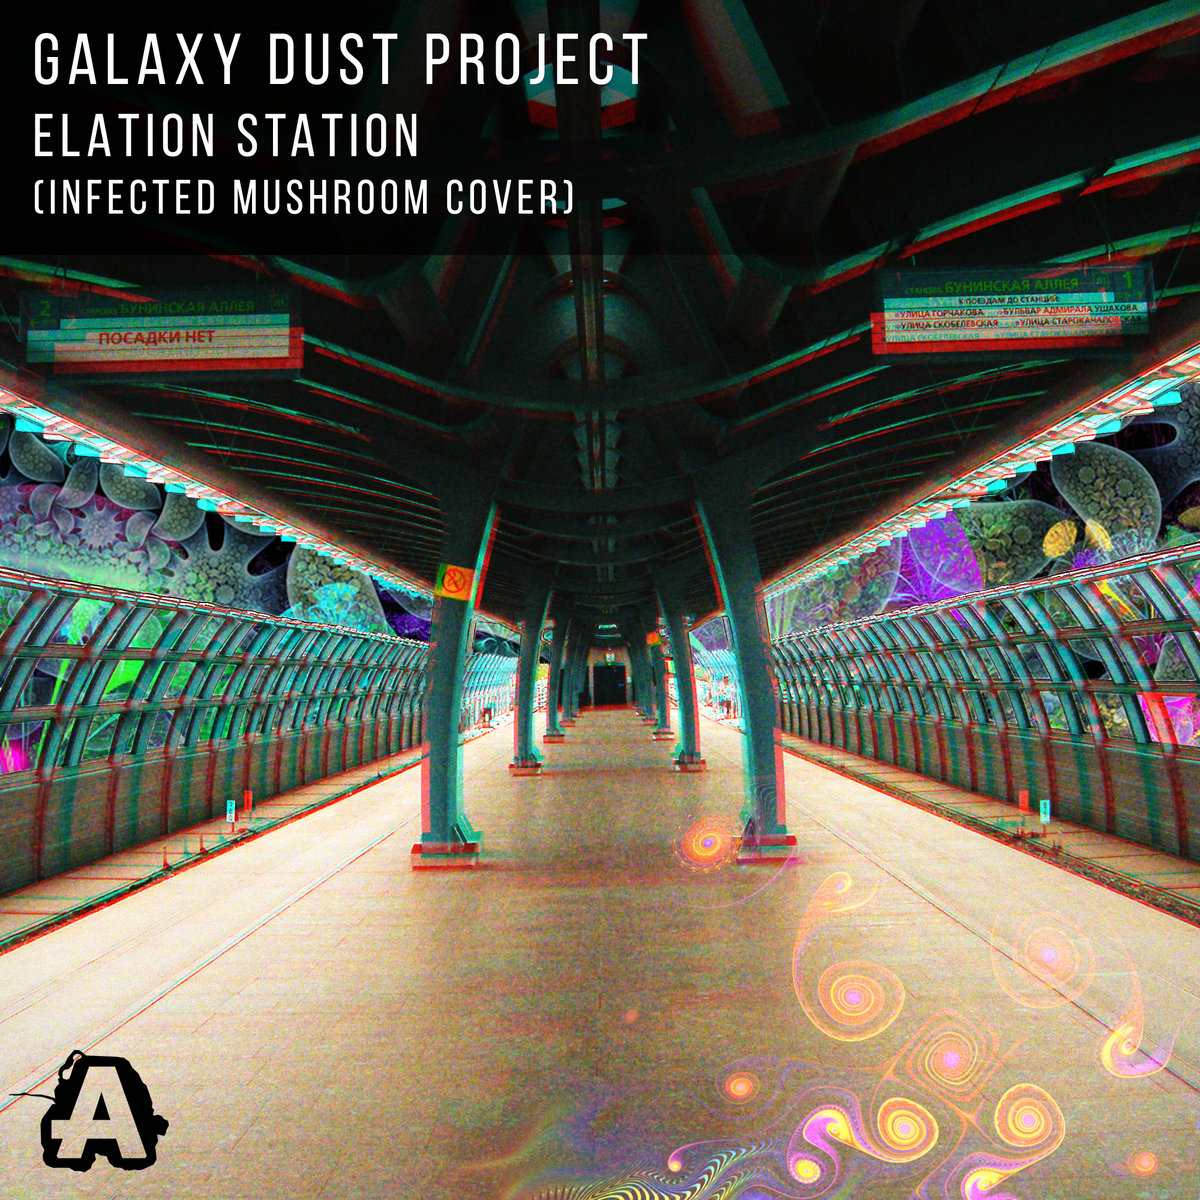 Infected Mushroom Songs Ideal elation station (infected mushroom cover) | galaxy dust project